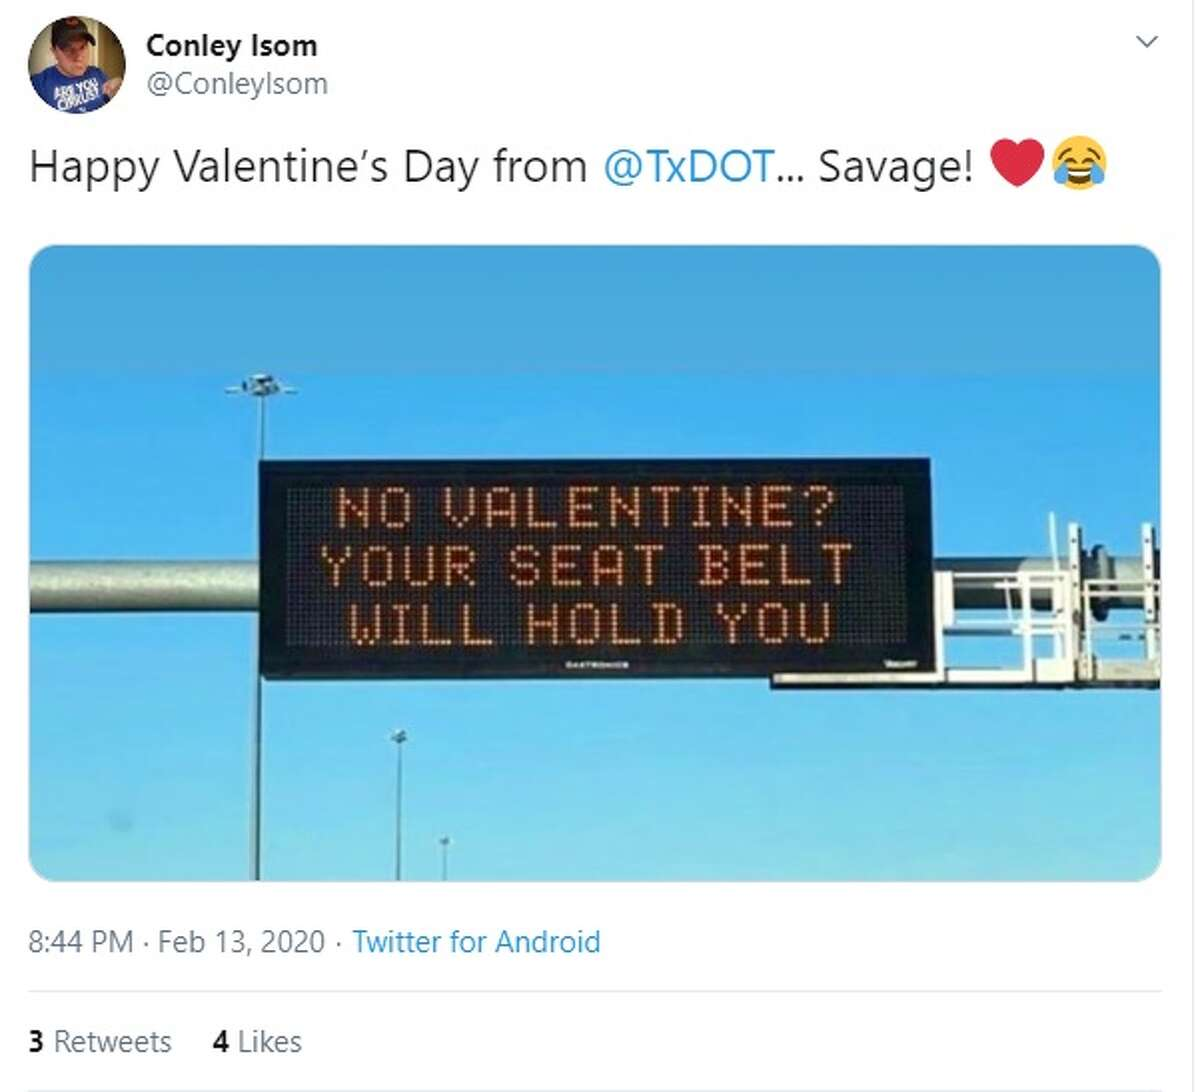 The Texas Department of Transportation is made waves on Twitter with its witty Valentine's Day road signs earlier this year.